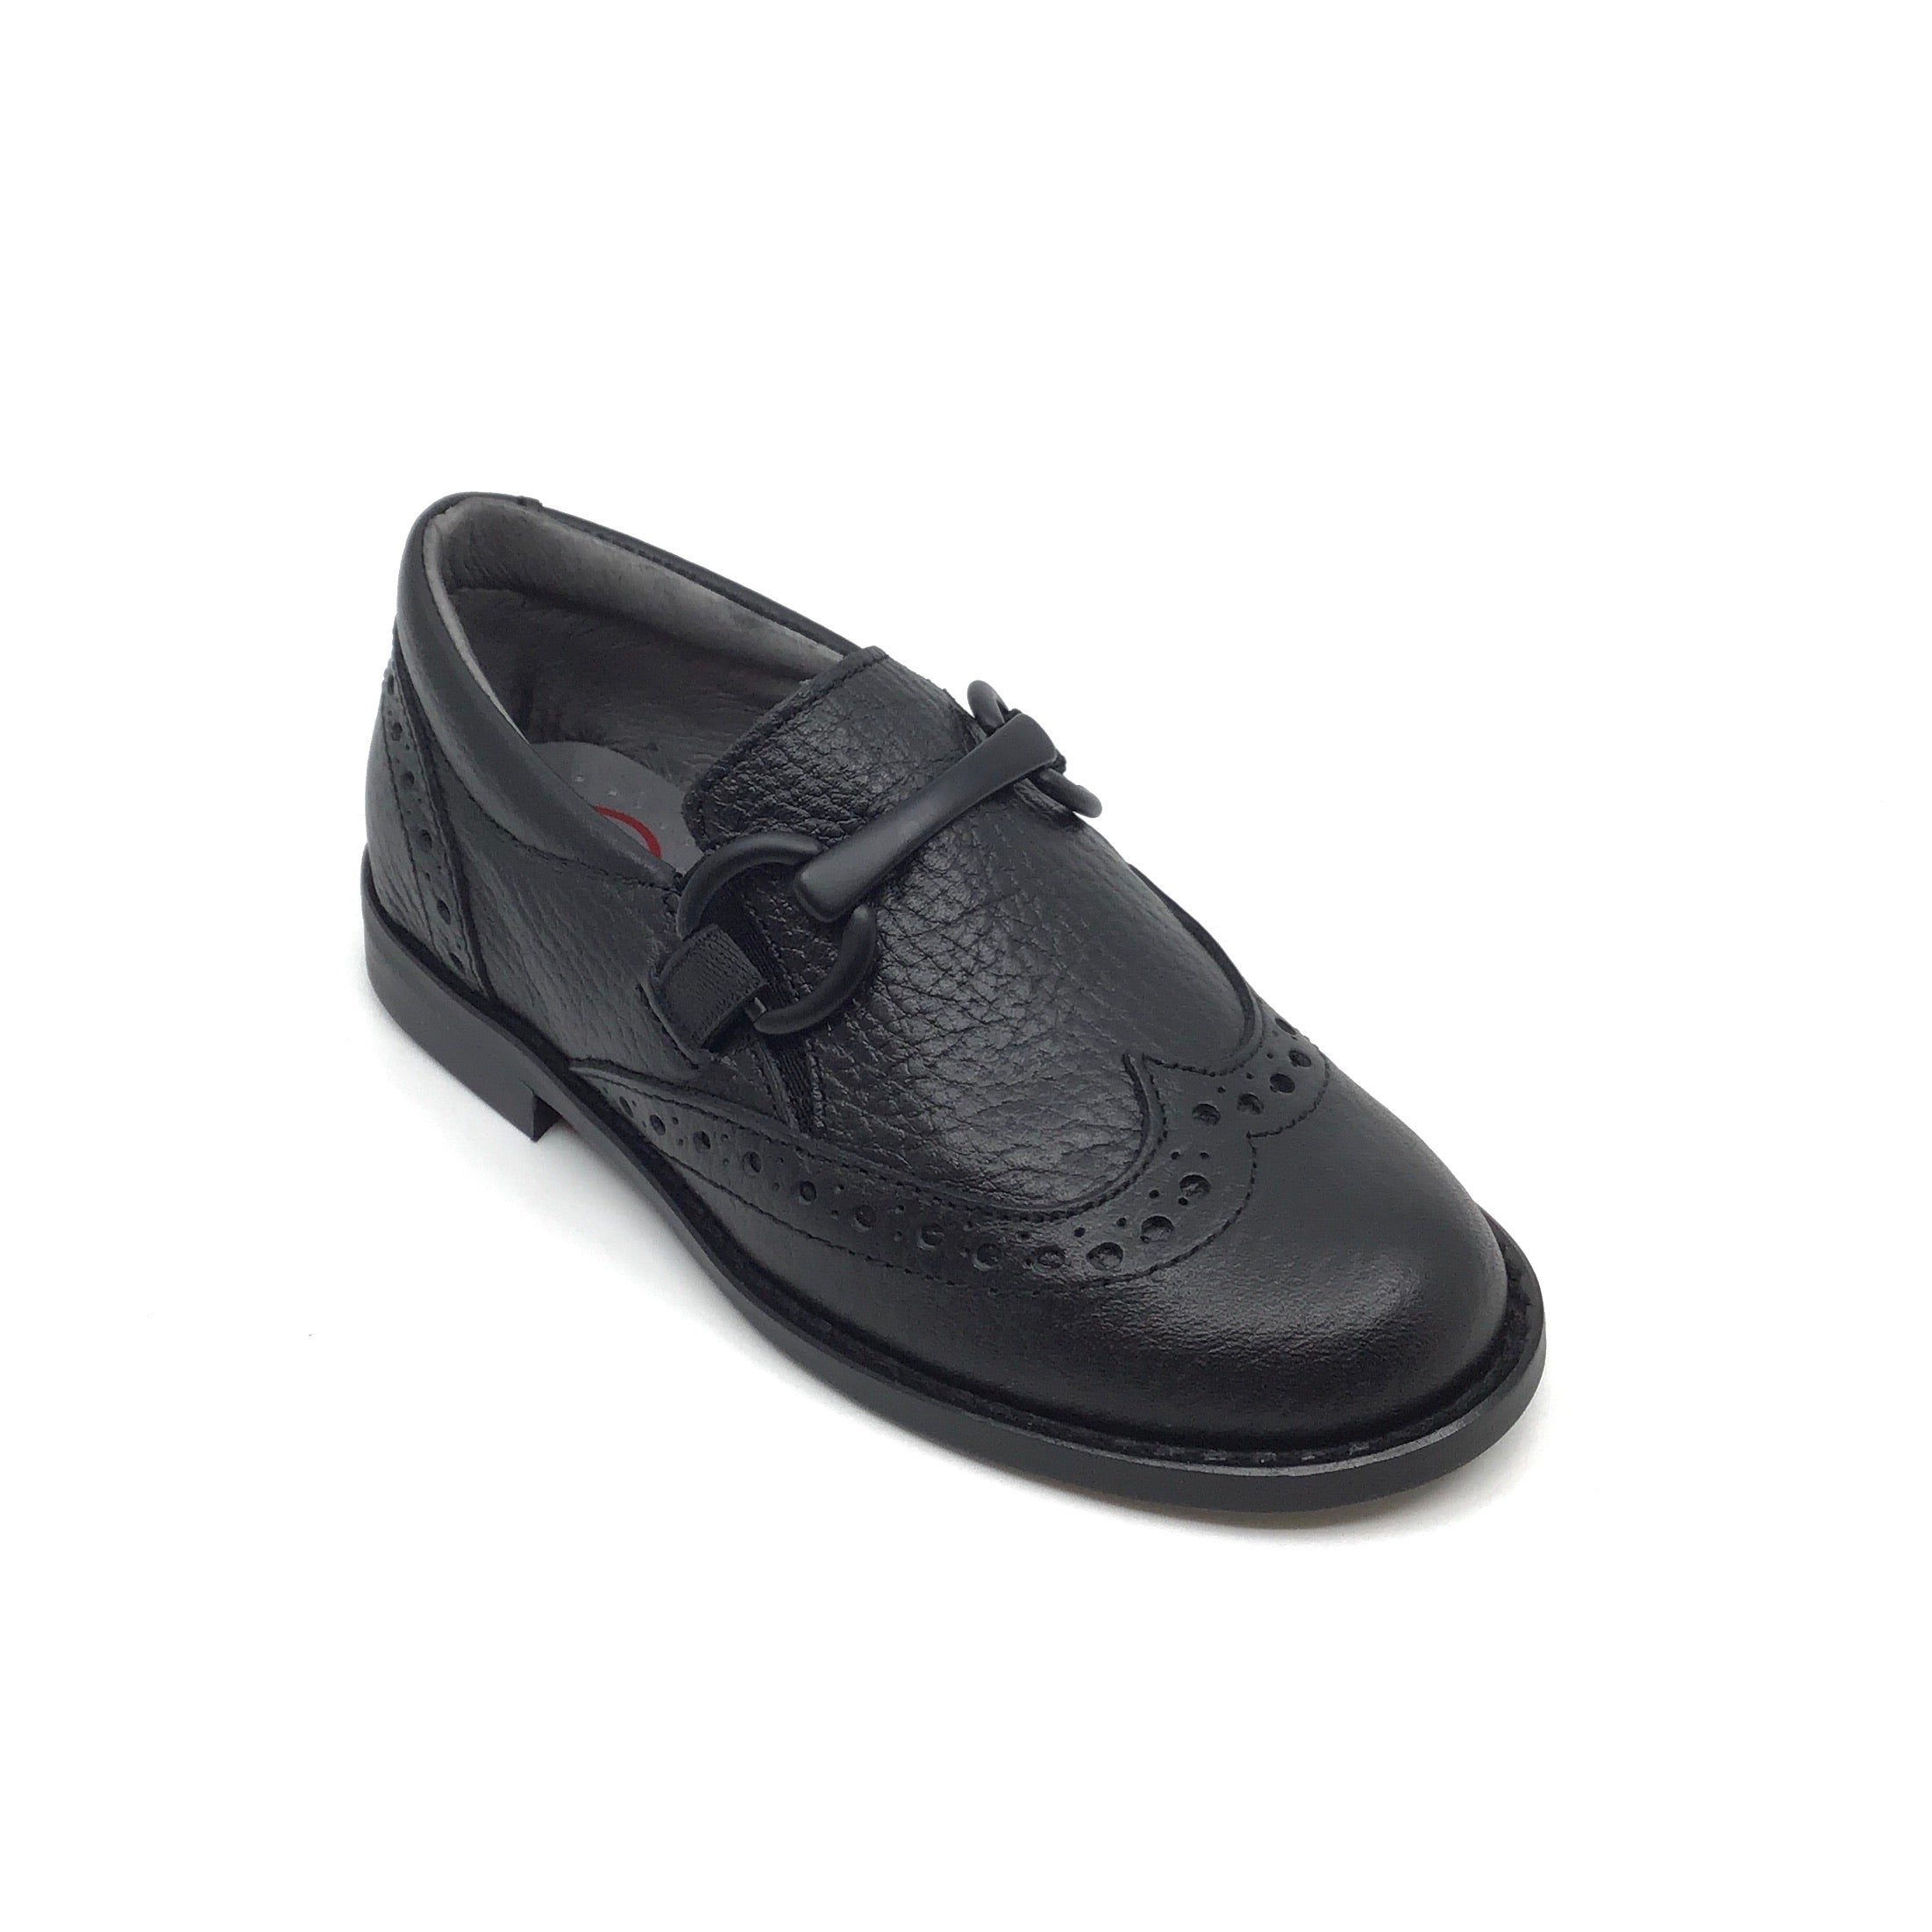 Blublonc Black Wingtip Shoe with Chain